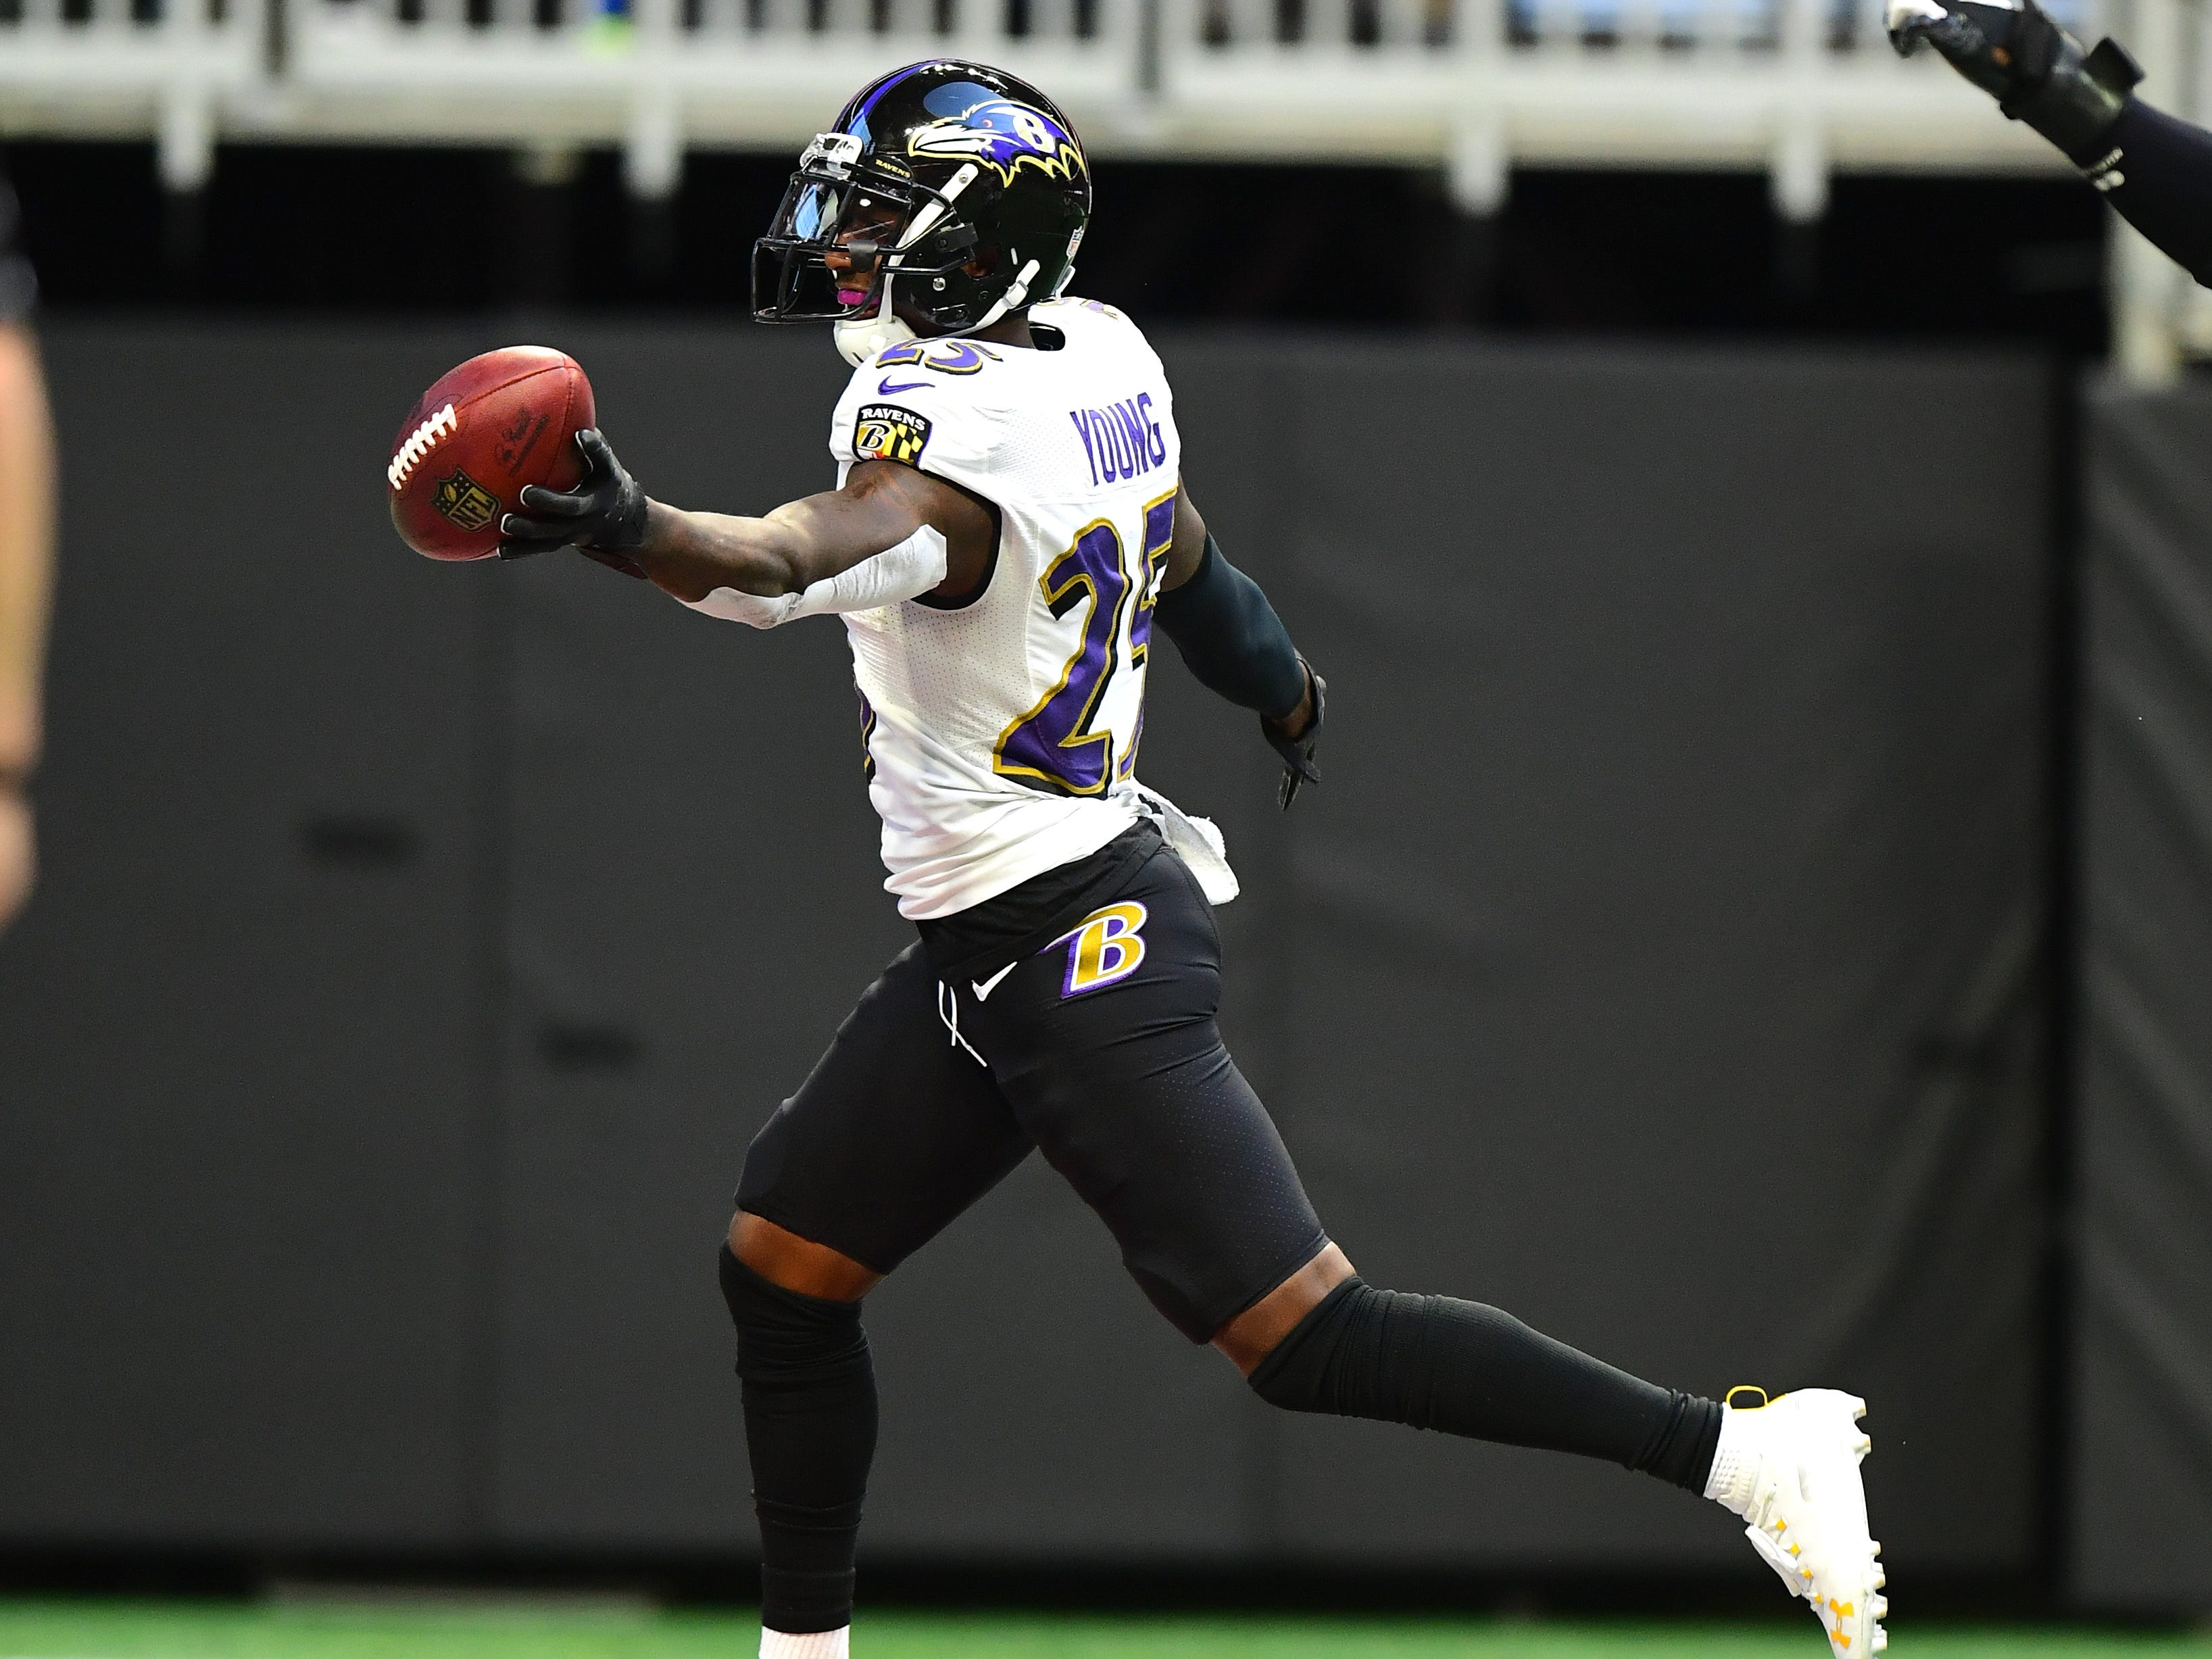 11. Ravens (7-5) | Last game: Defeated the Falcons, 26-16 | Previous ranking: 12 | The buzz: John Harbaugh can attest that a good defense still goes a long way in the NFL.